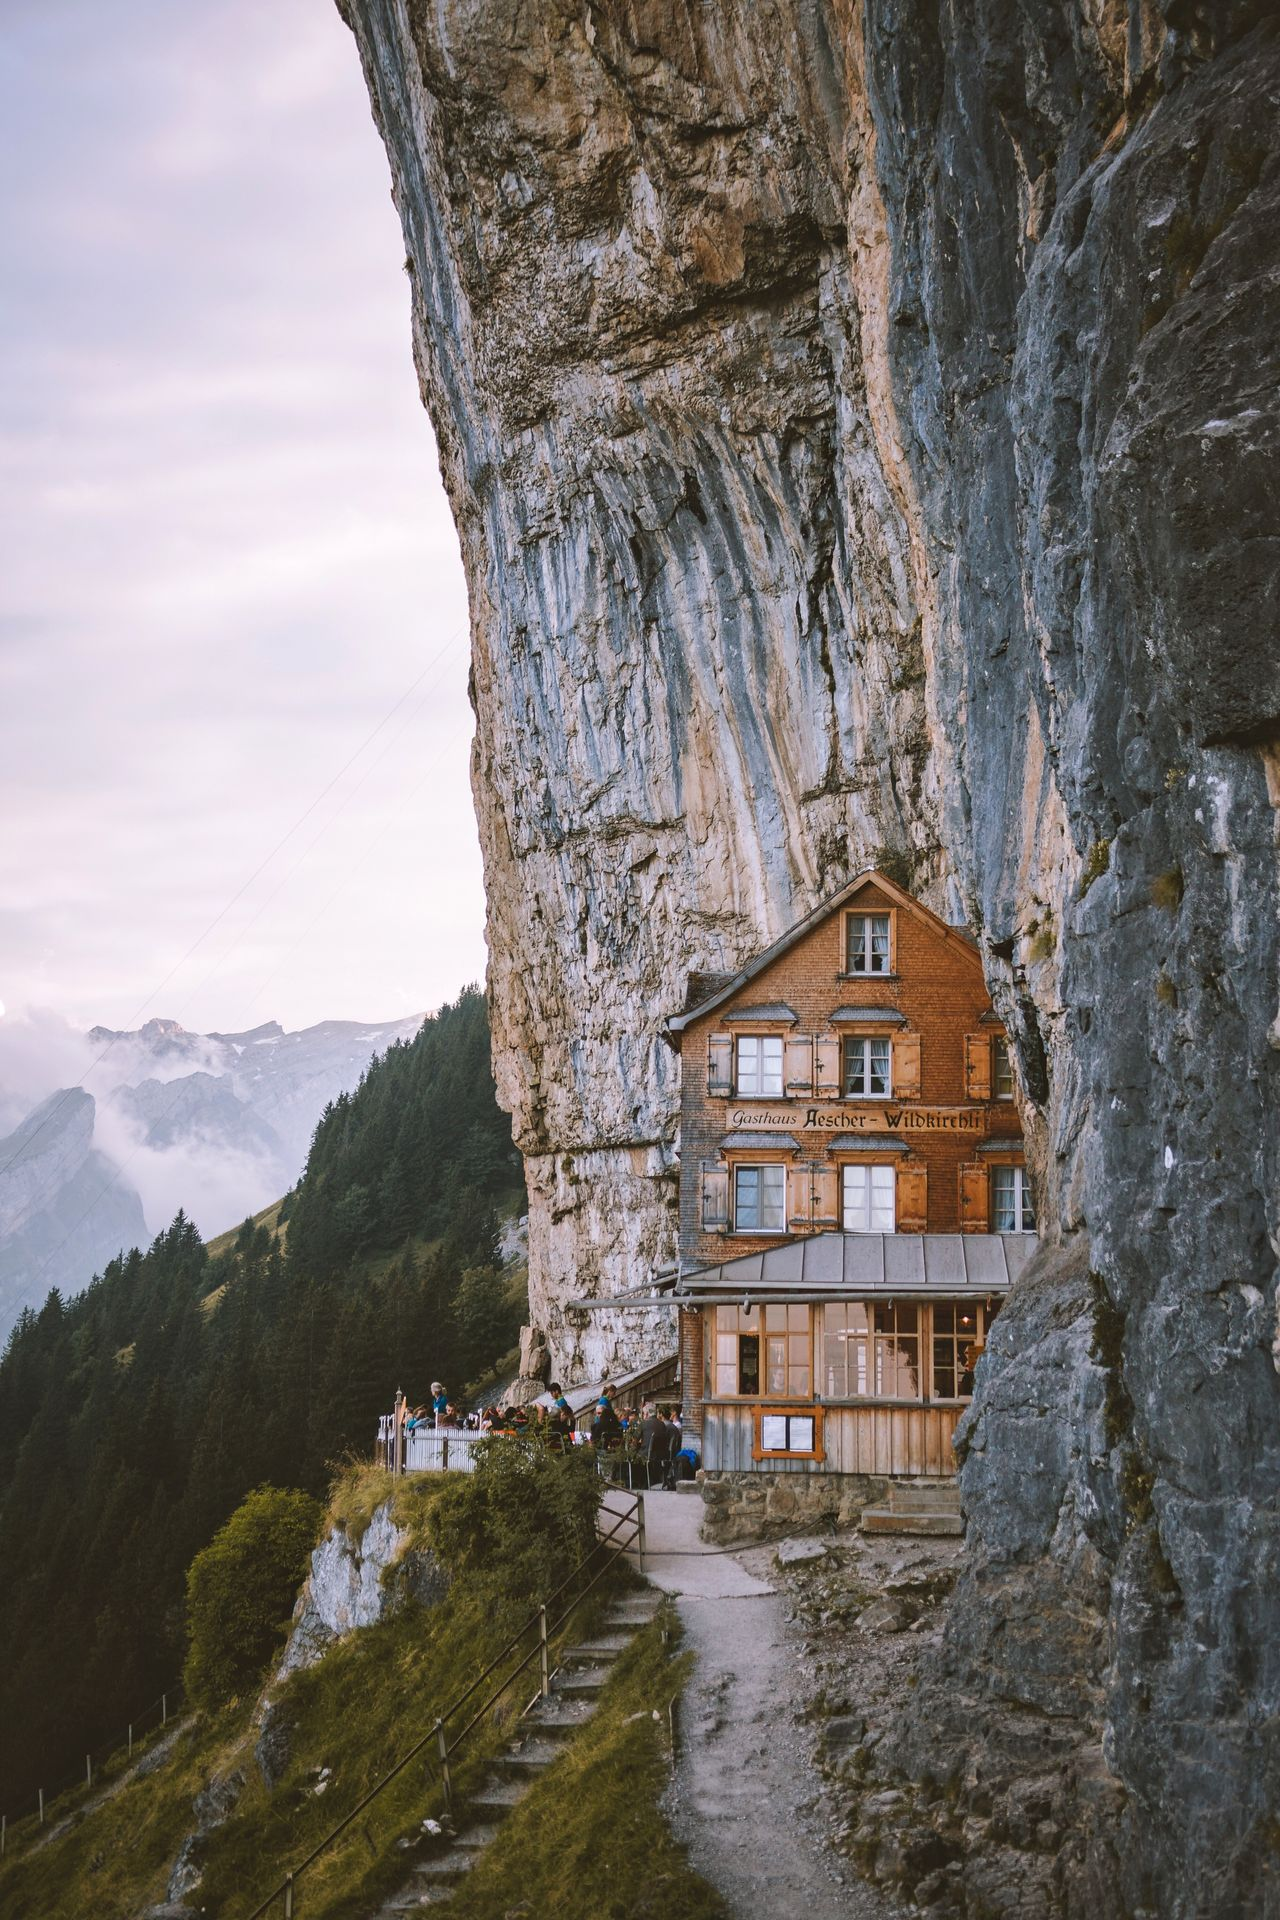 Mountain cafe. Switzerland Built Structure House Architecture Mountain Rock - Object Building Exterior No People Water Nature Day Scenics Sky Outdoors Beauty In Nature